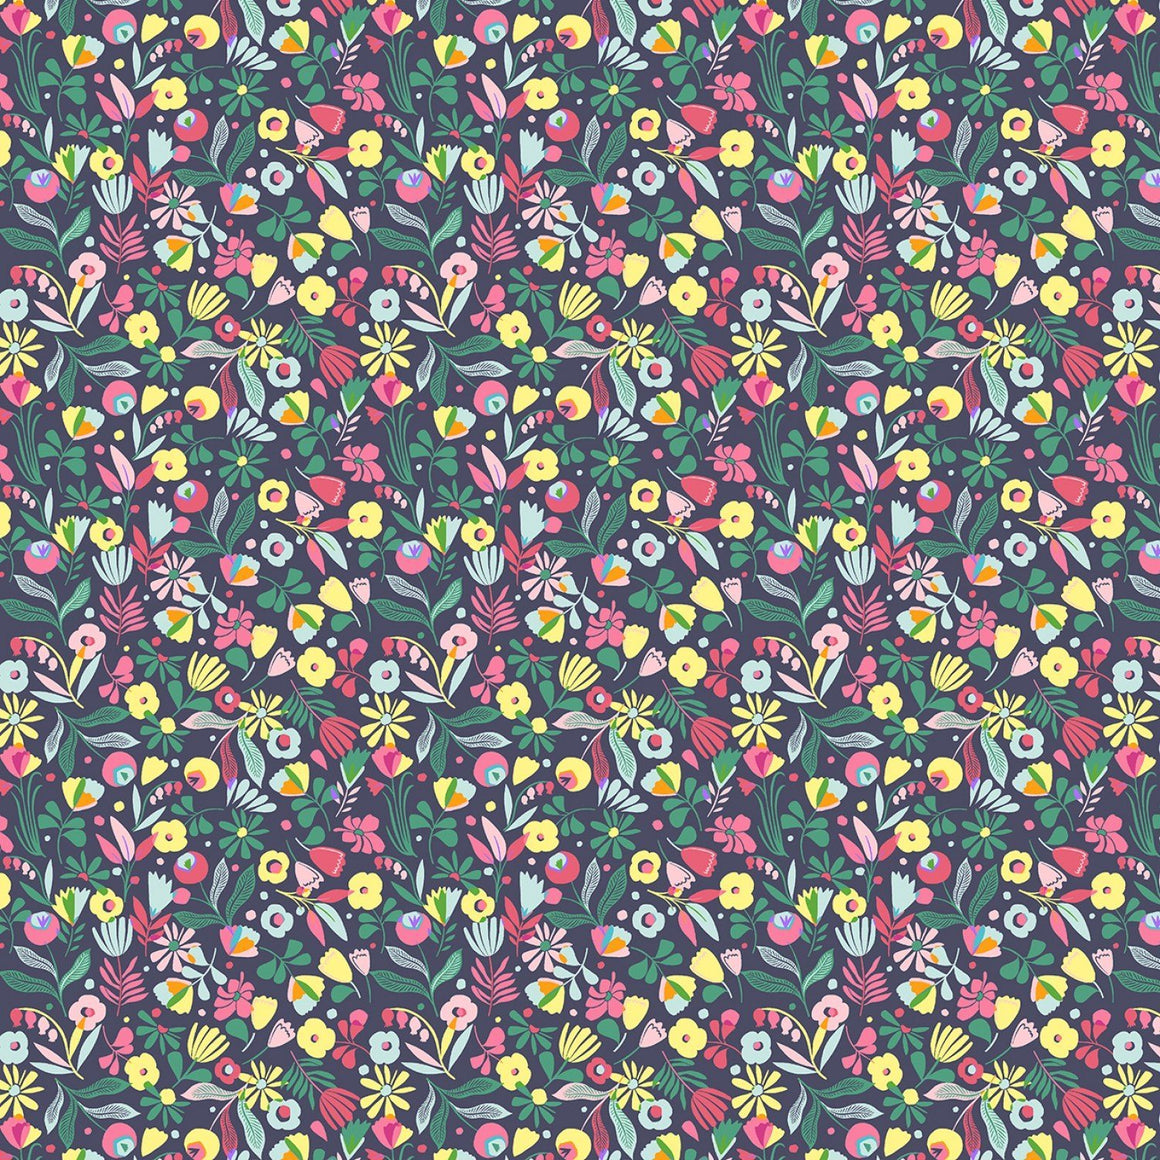 Dusty Navy Fuchsia Yellow and Green Floral Cotton Spandex Jersey Knit, Dear Stella Knits Collection - Raspberry Creek Fabrics